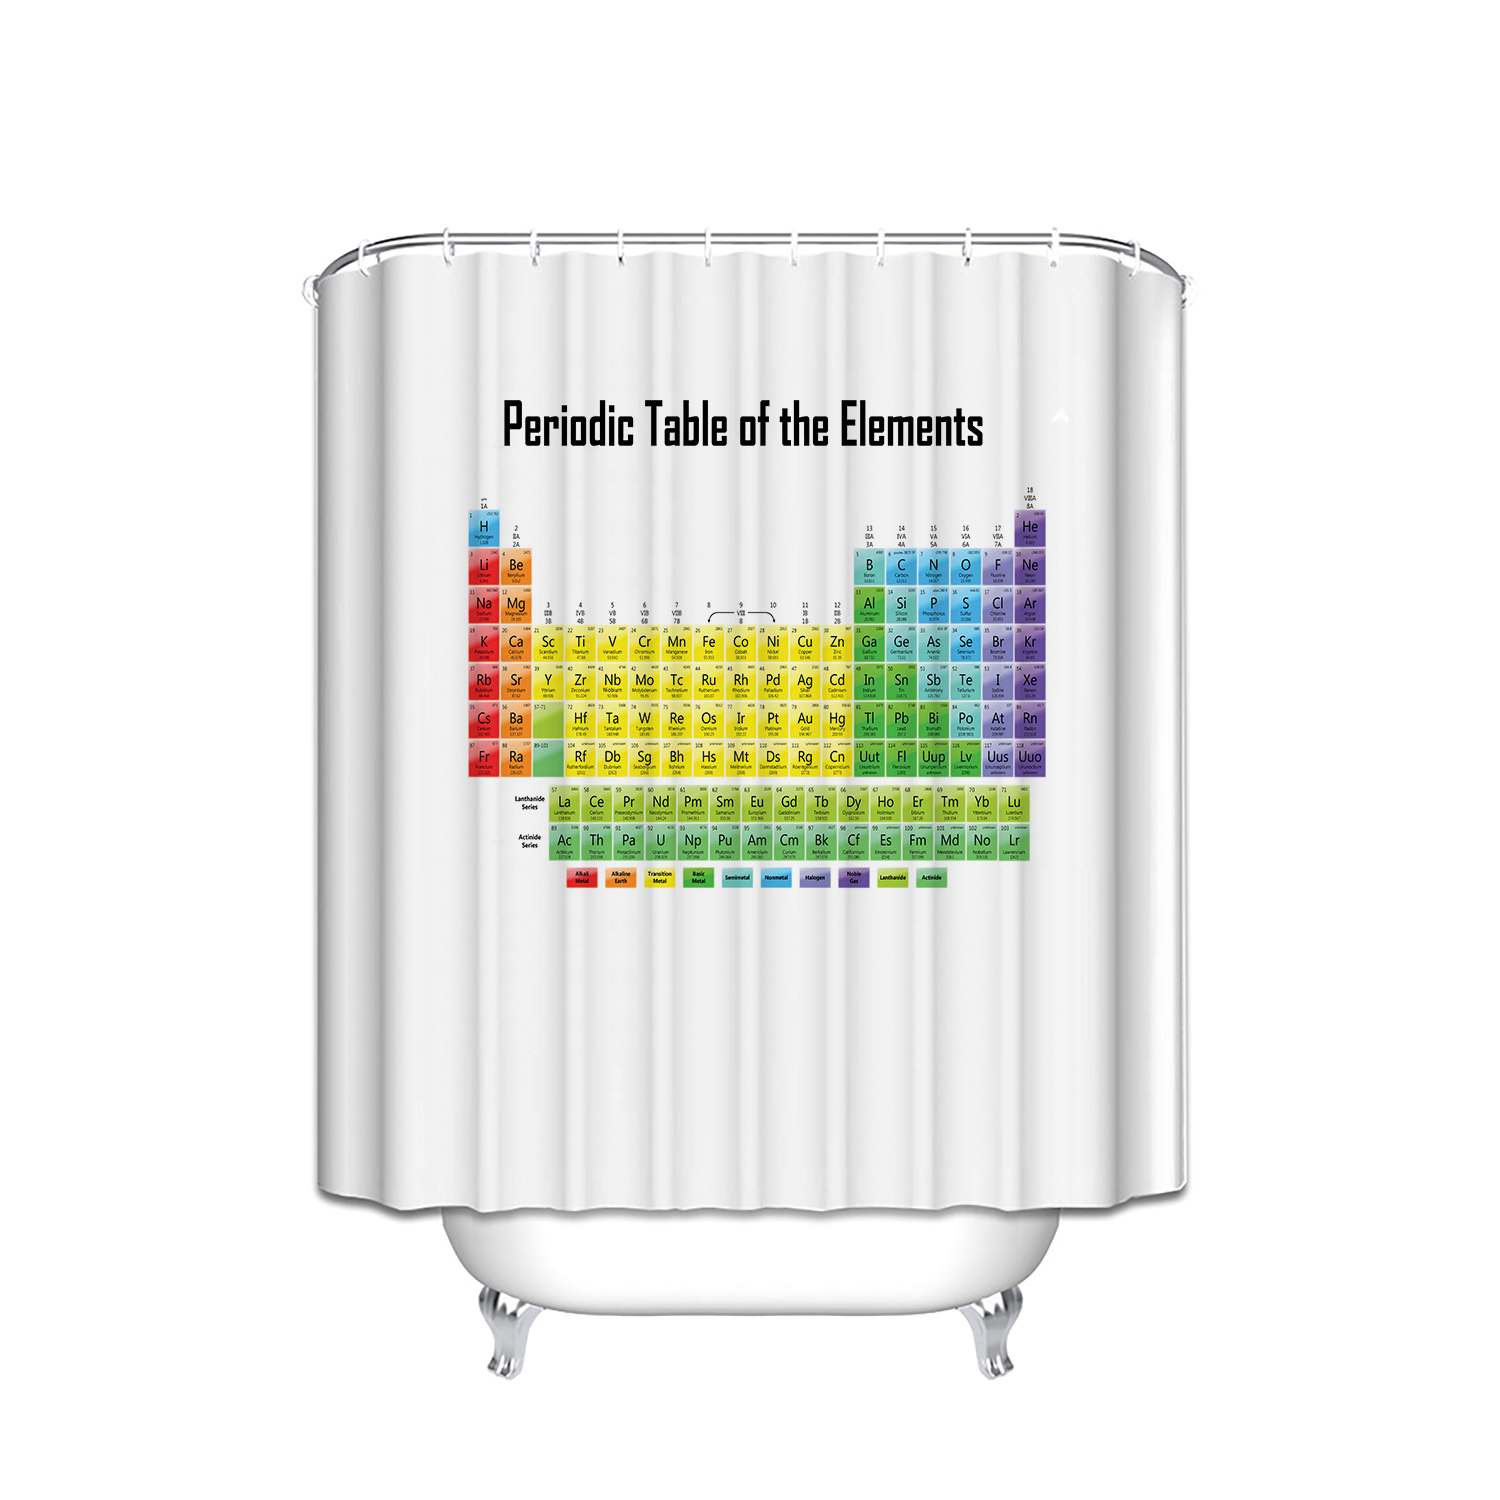 Table english pub table antique periodic table product on alibaba com - Bathroom Periodic Table Of The Elements Waterproof Bathroom Shower Curtain China